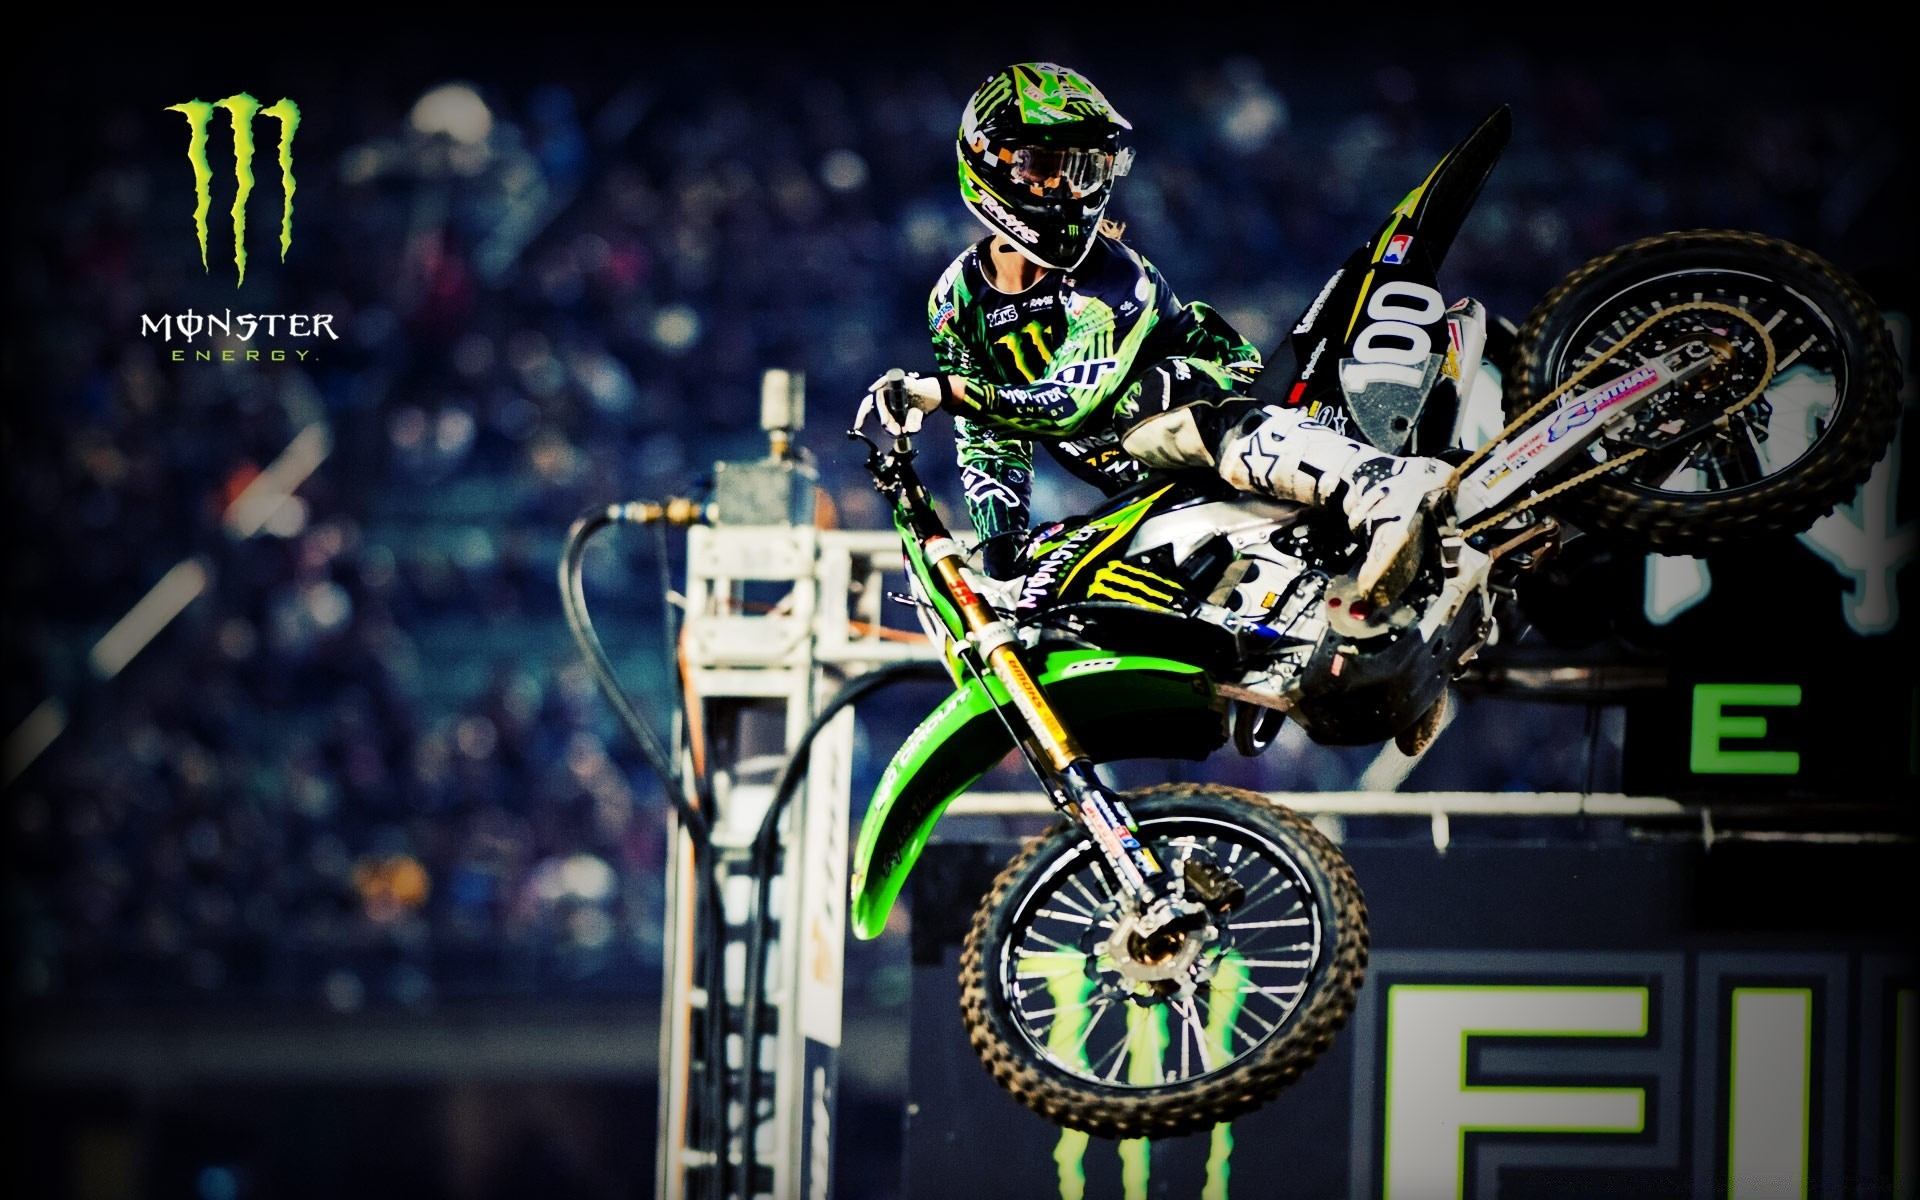 Monster Energy Motocross